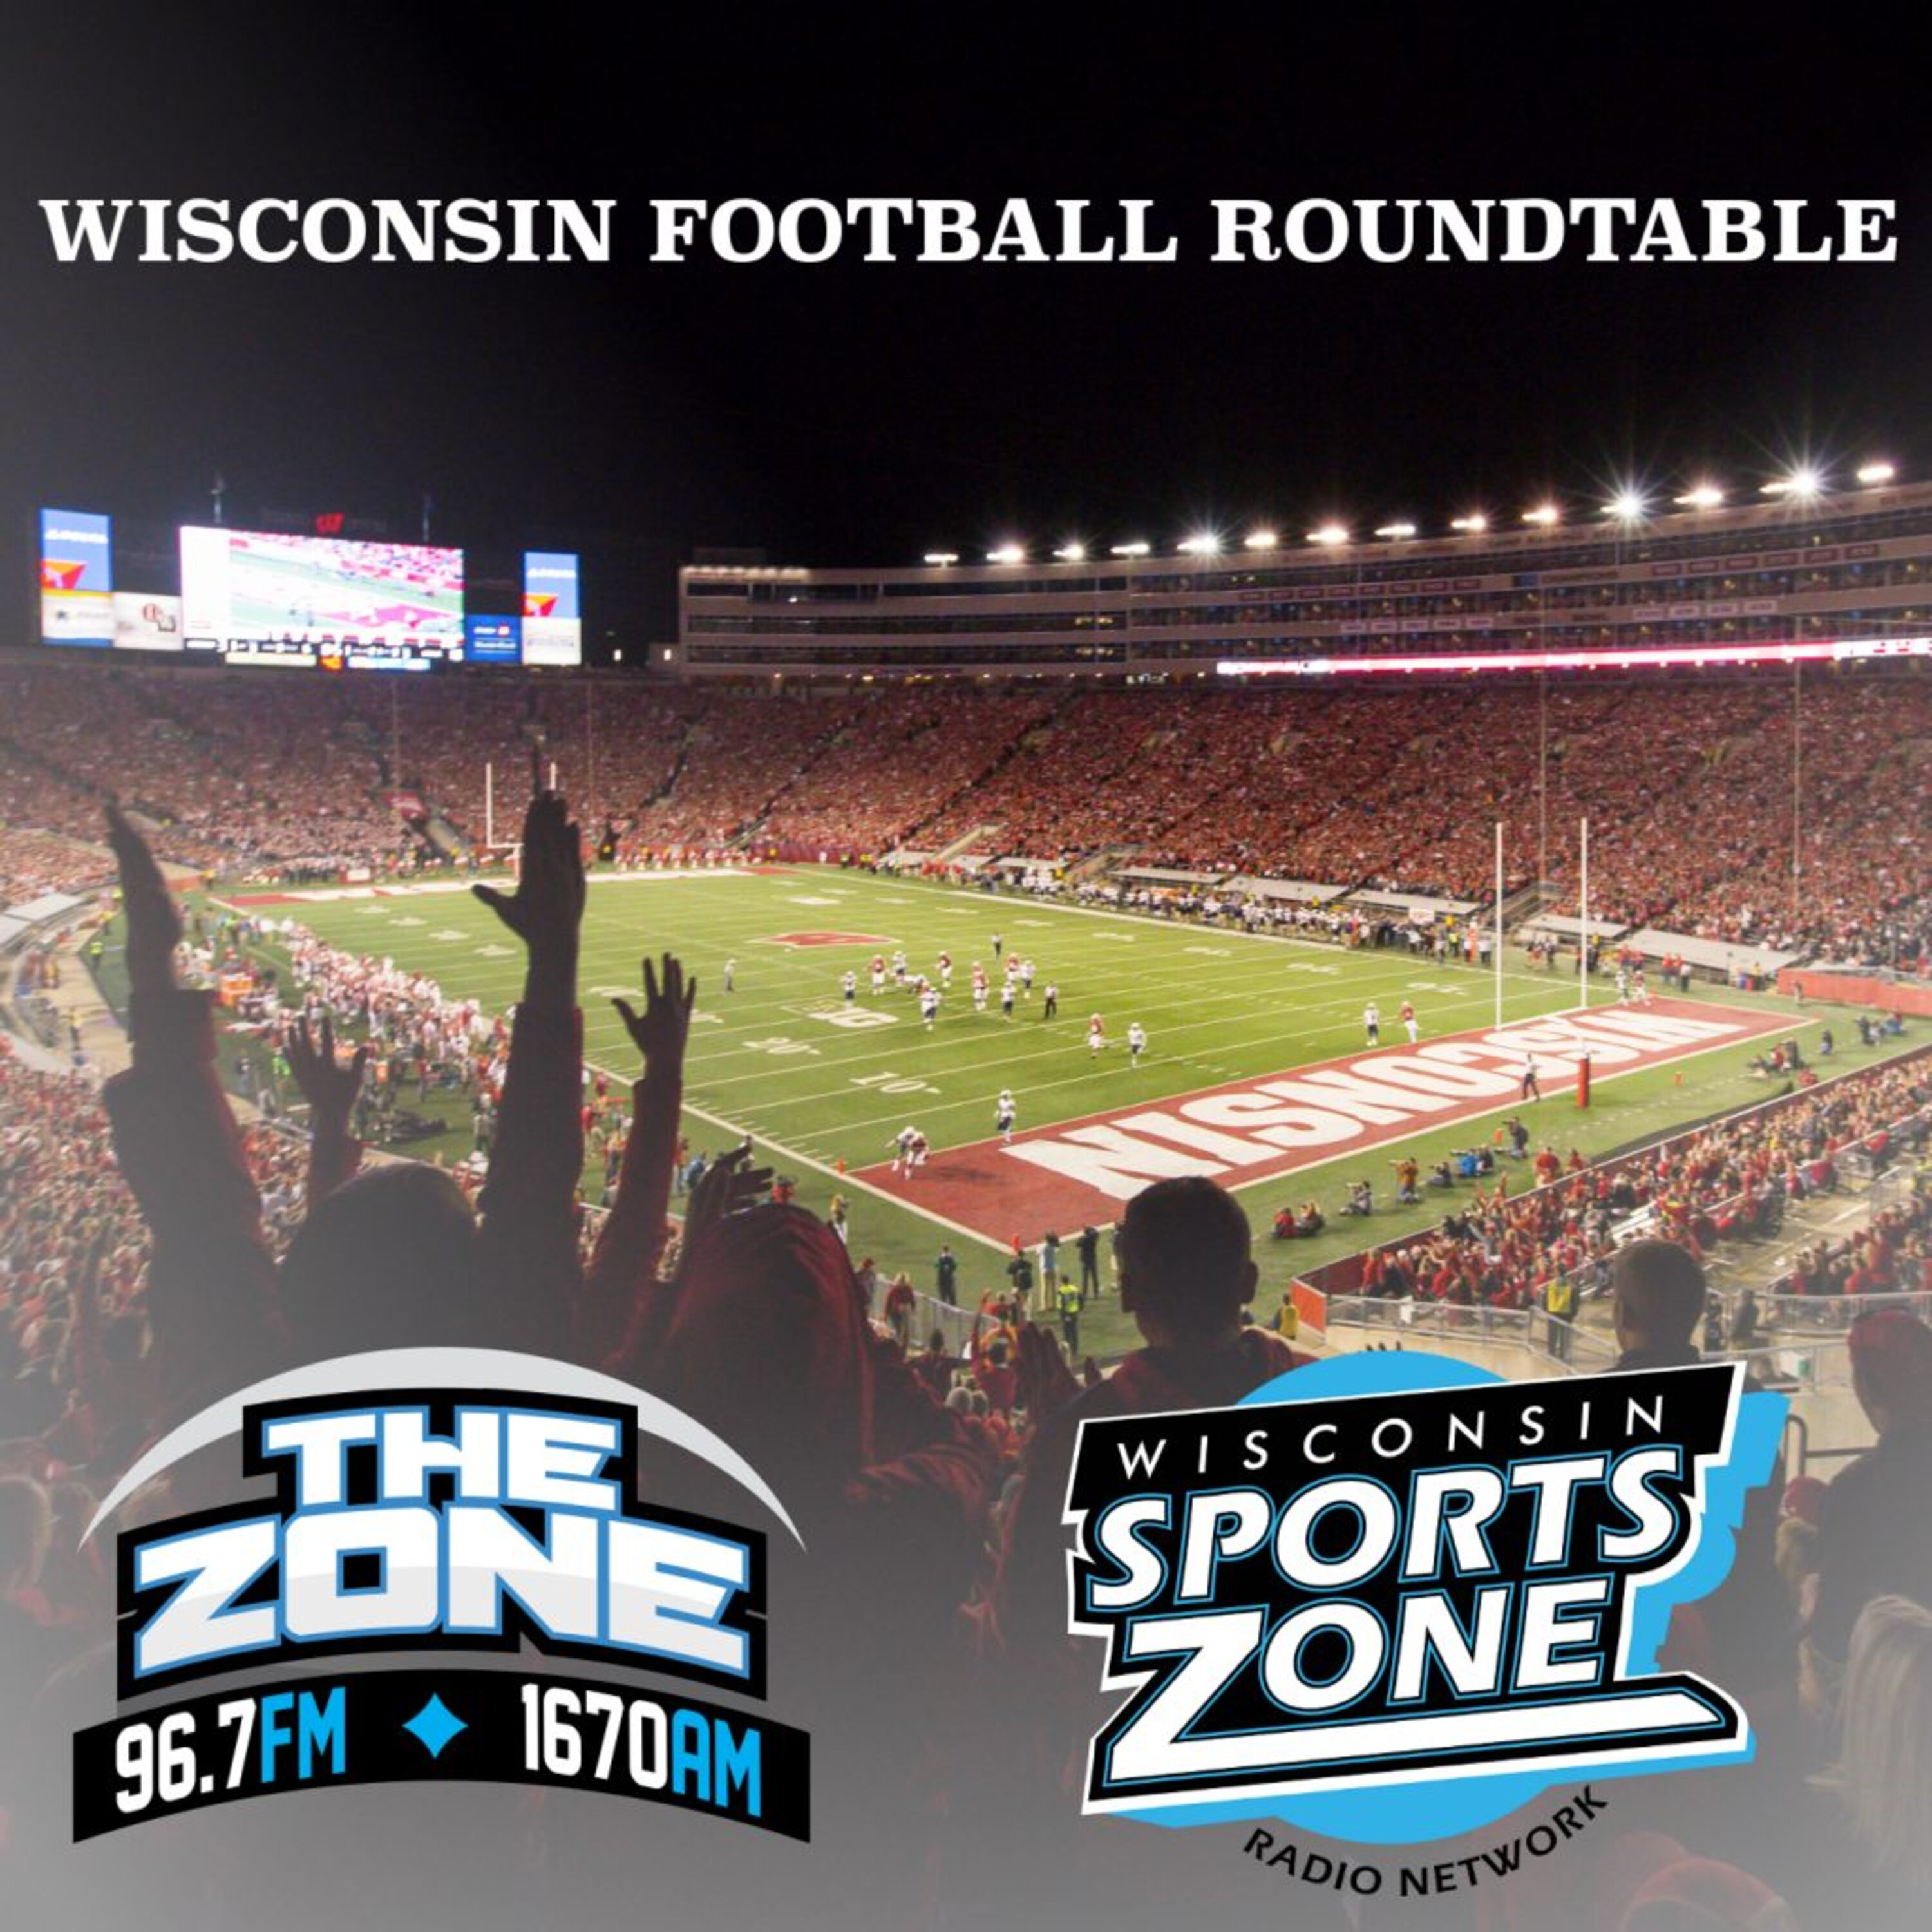 2019 Wisconsin Football Roundtable info